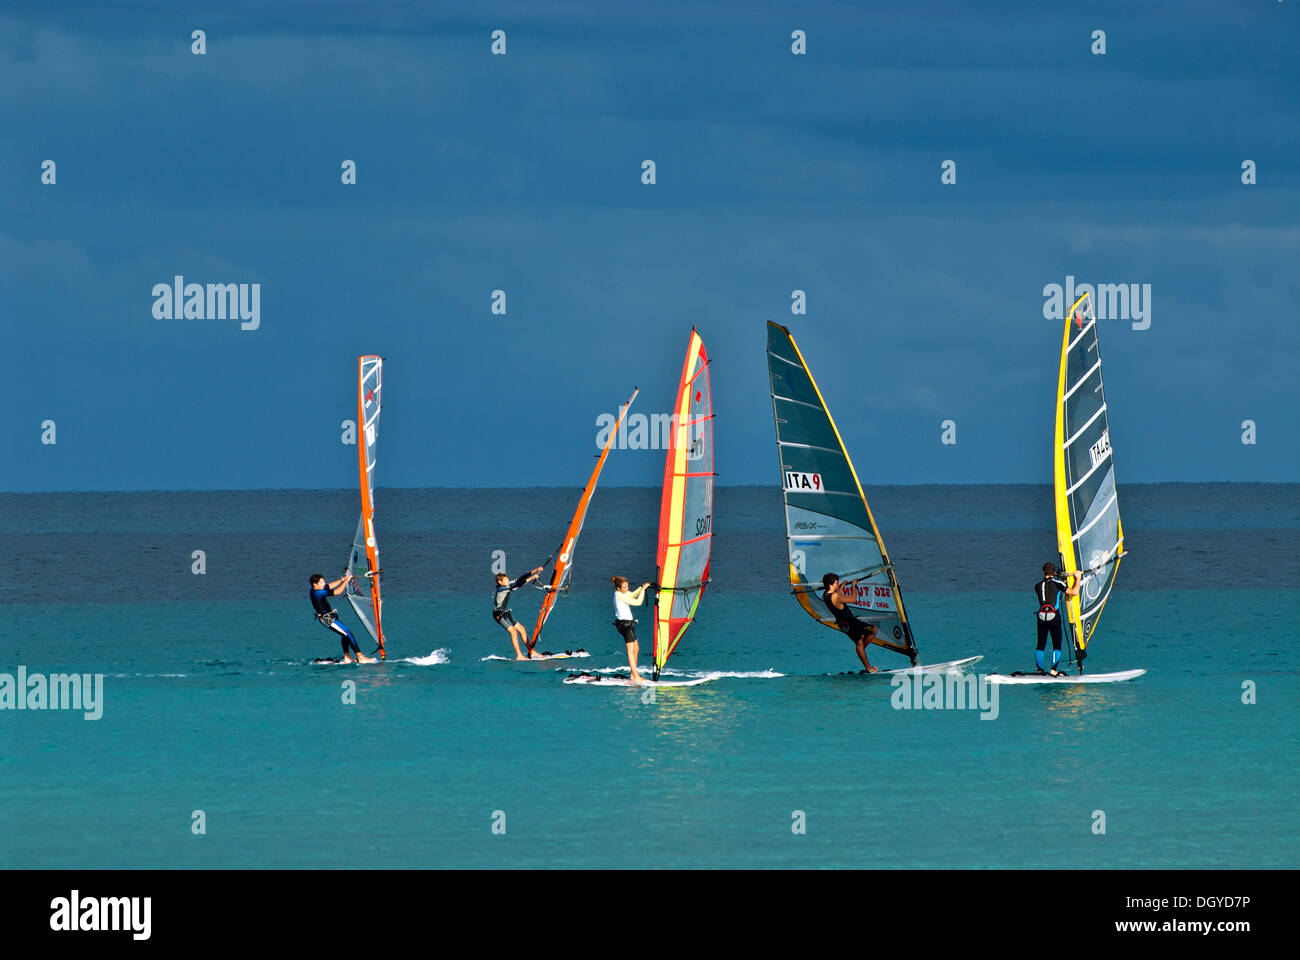 Wind Surfing, Sicily, Italy - Stock Image